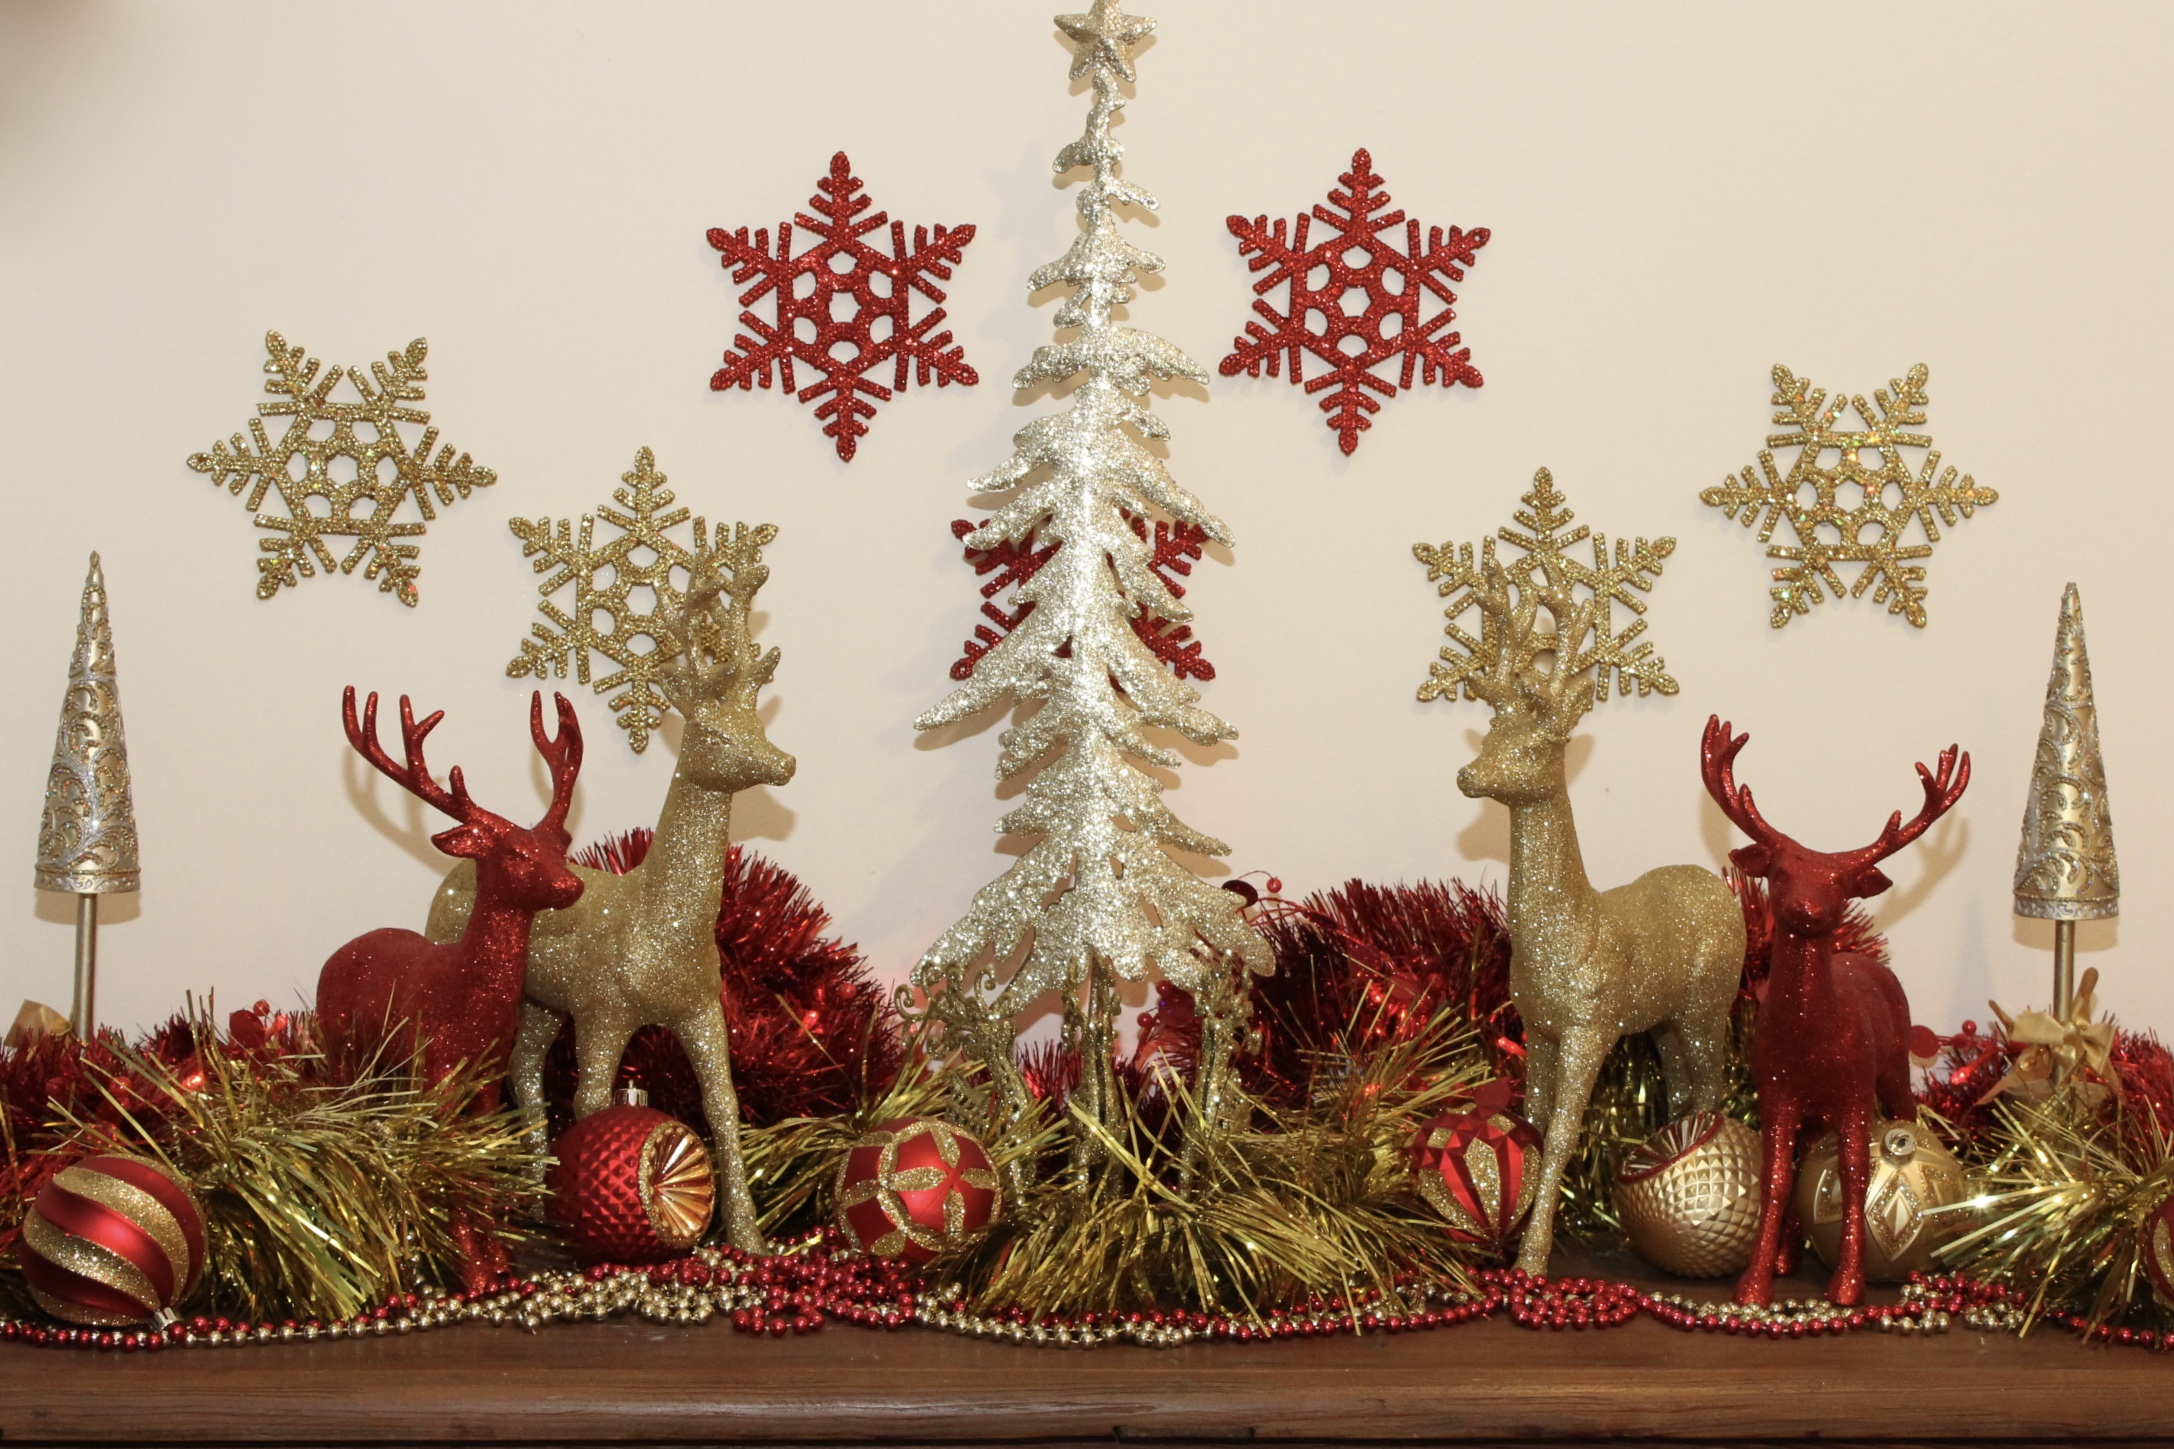 Christmas Table Red and Gold Design with Deers